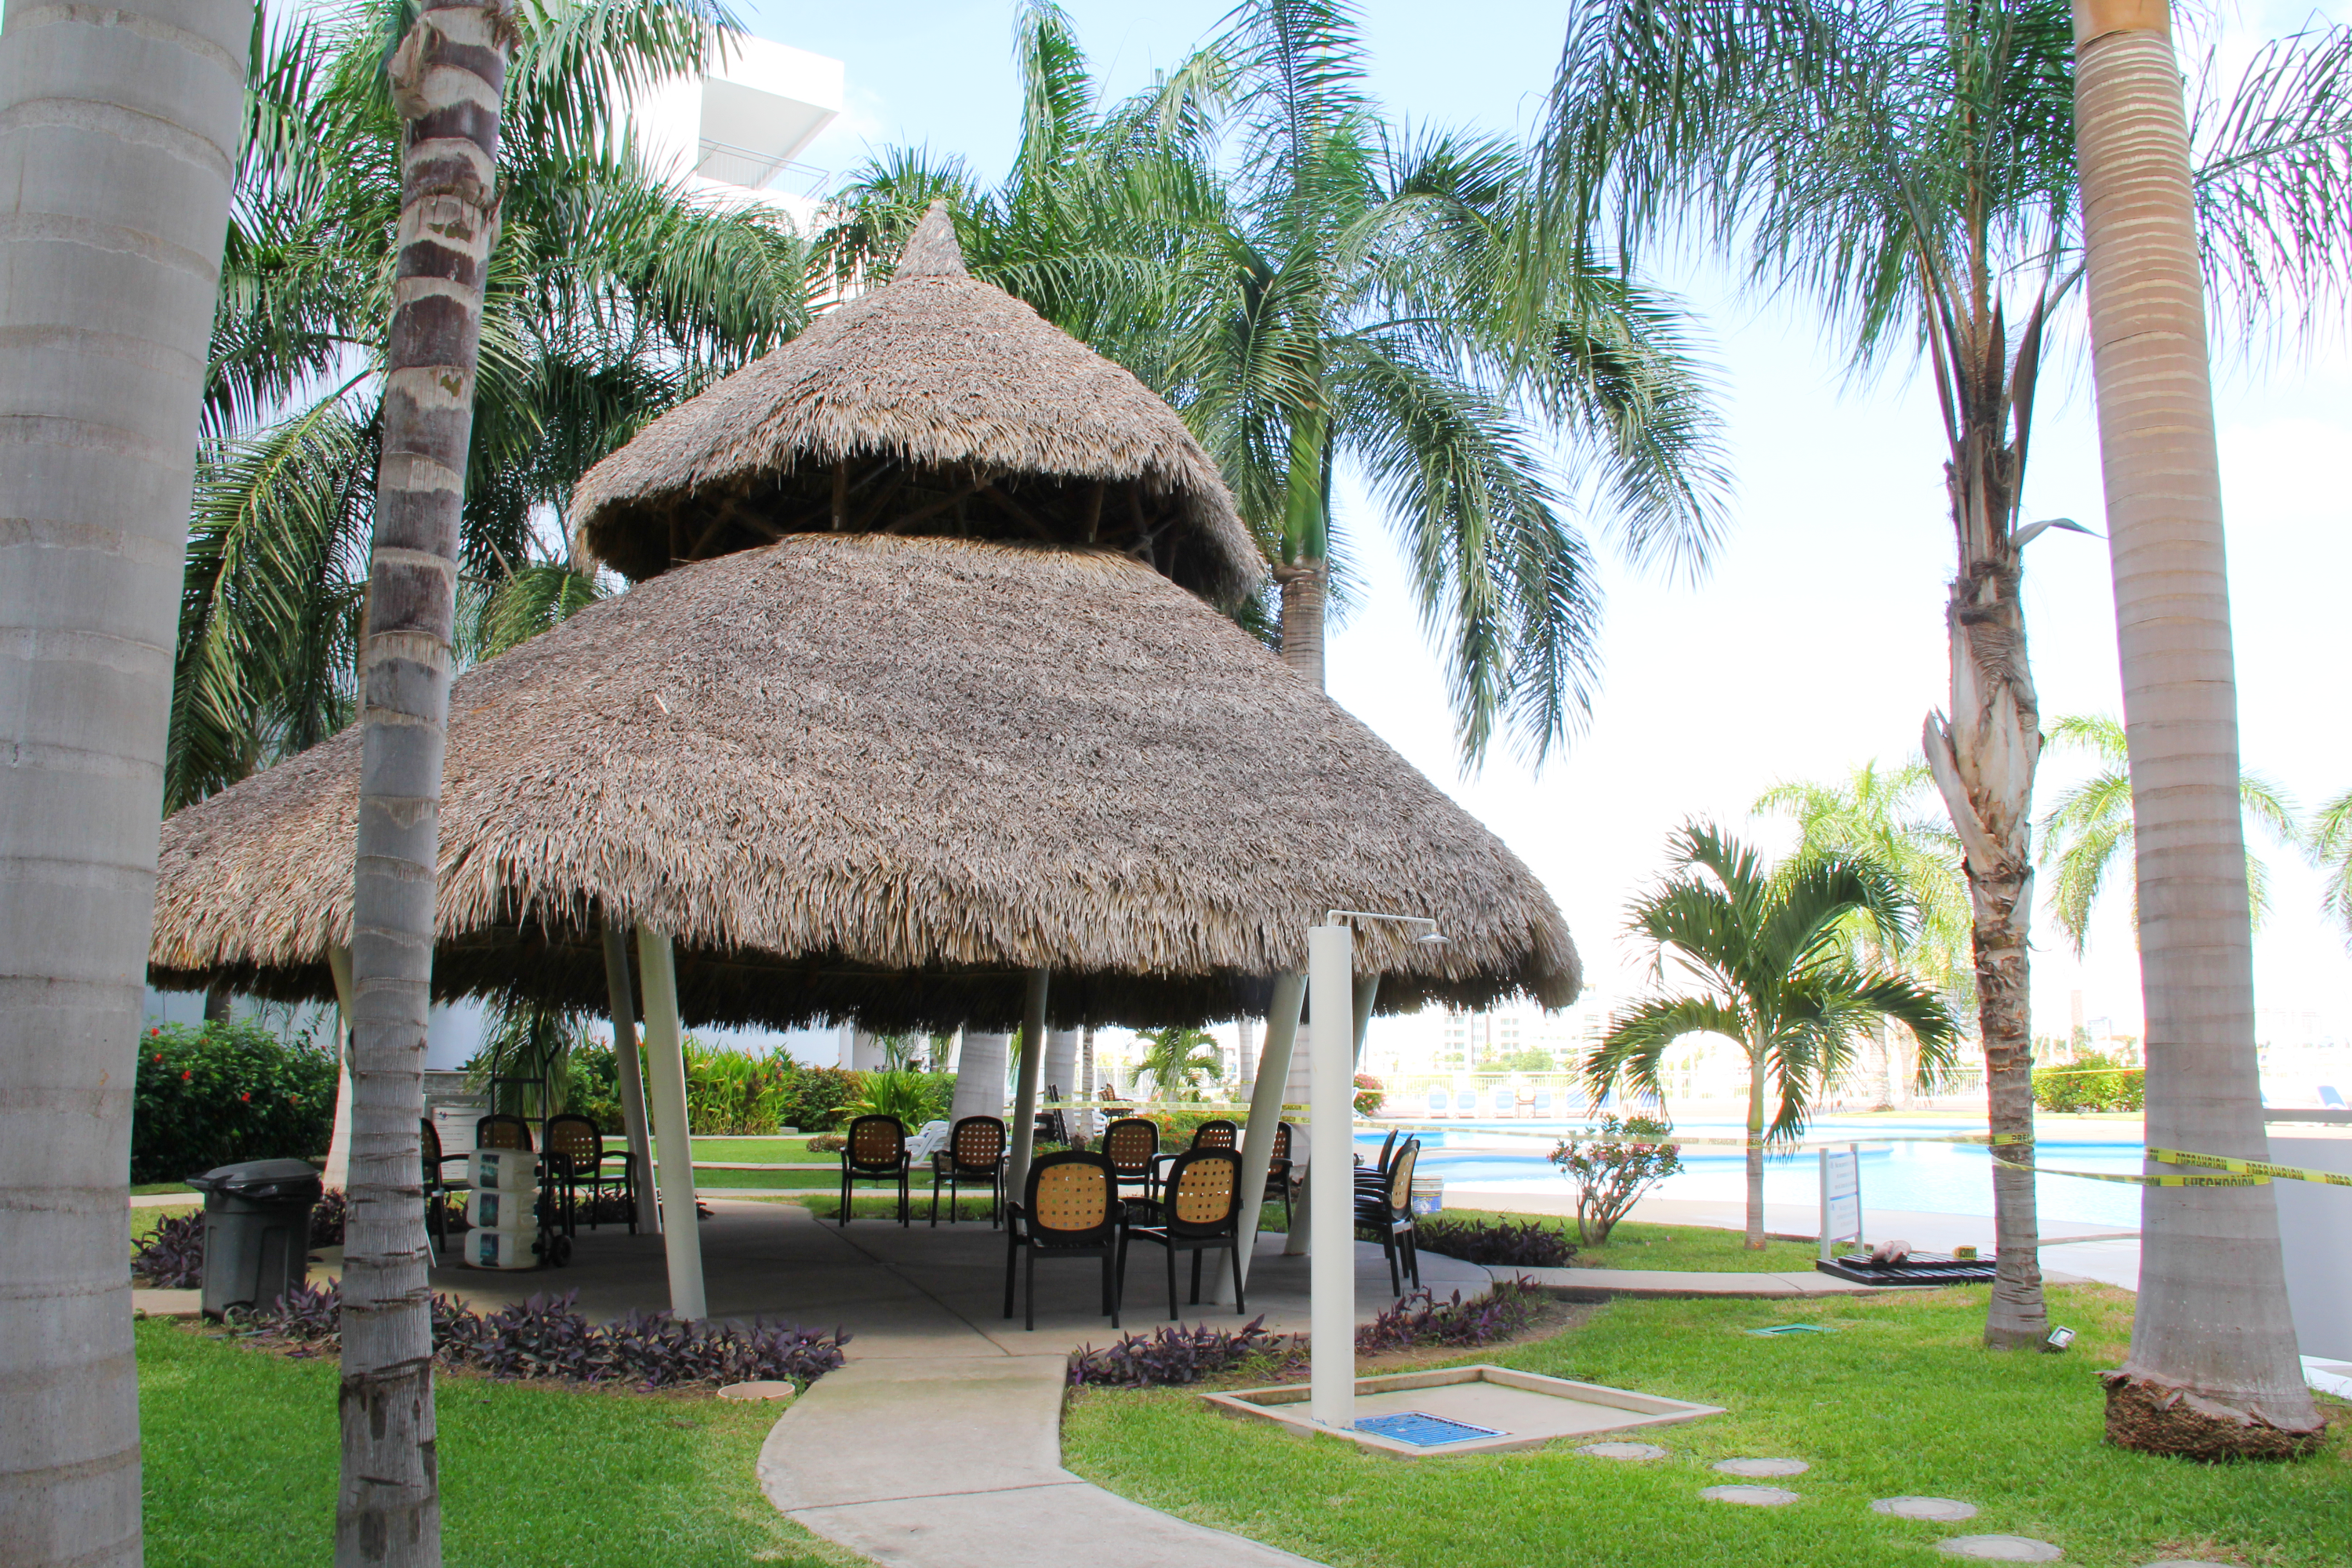 Large shared palapa with seating.